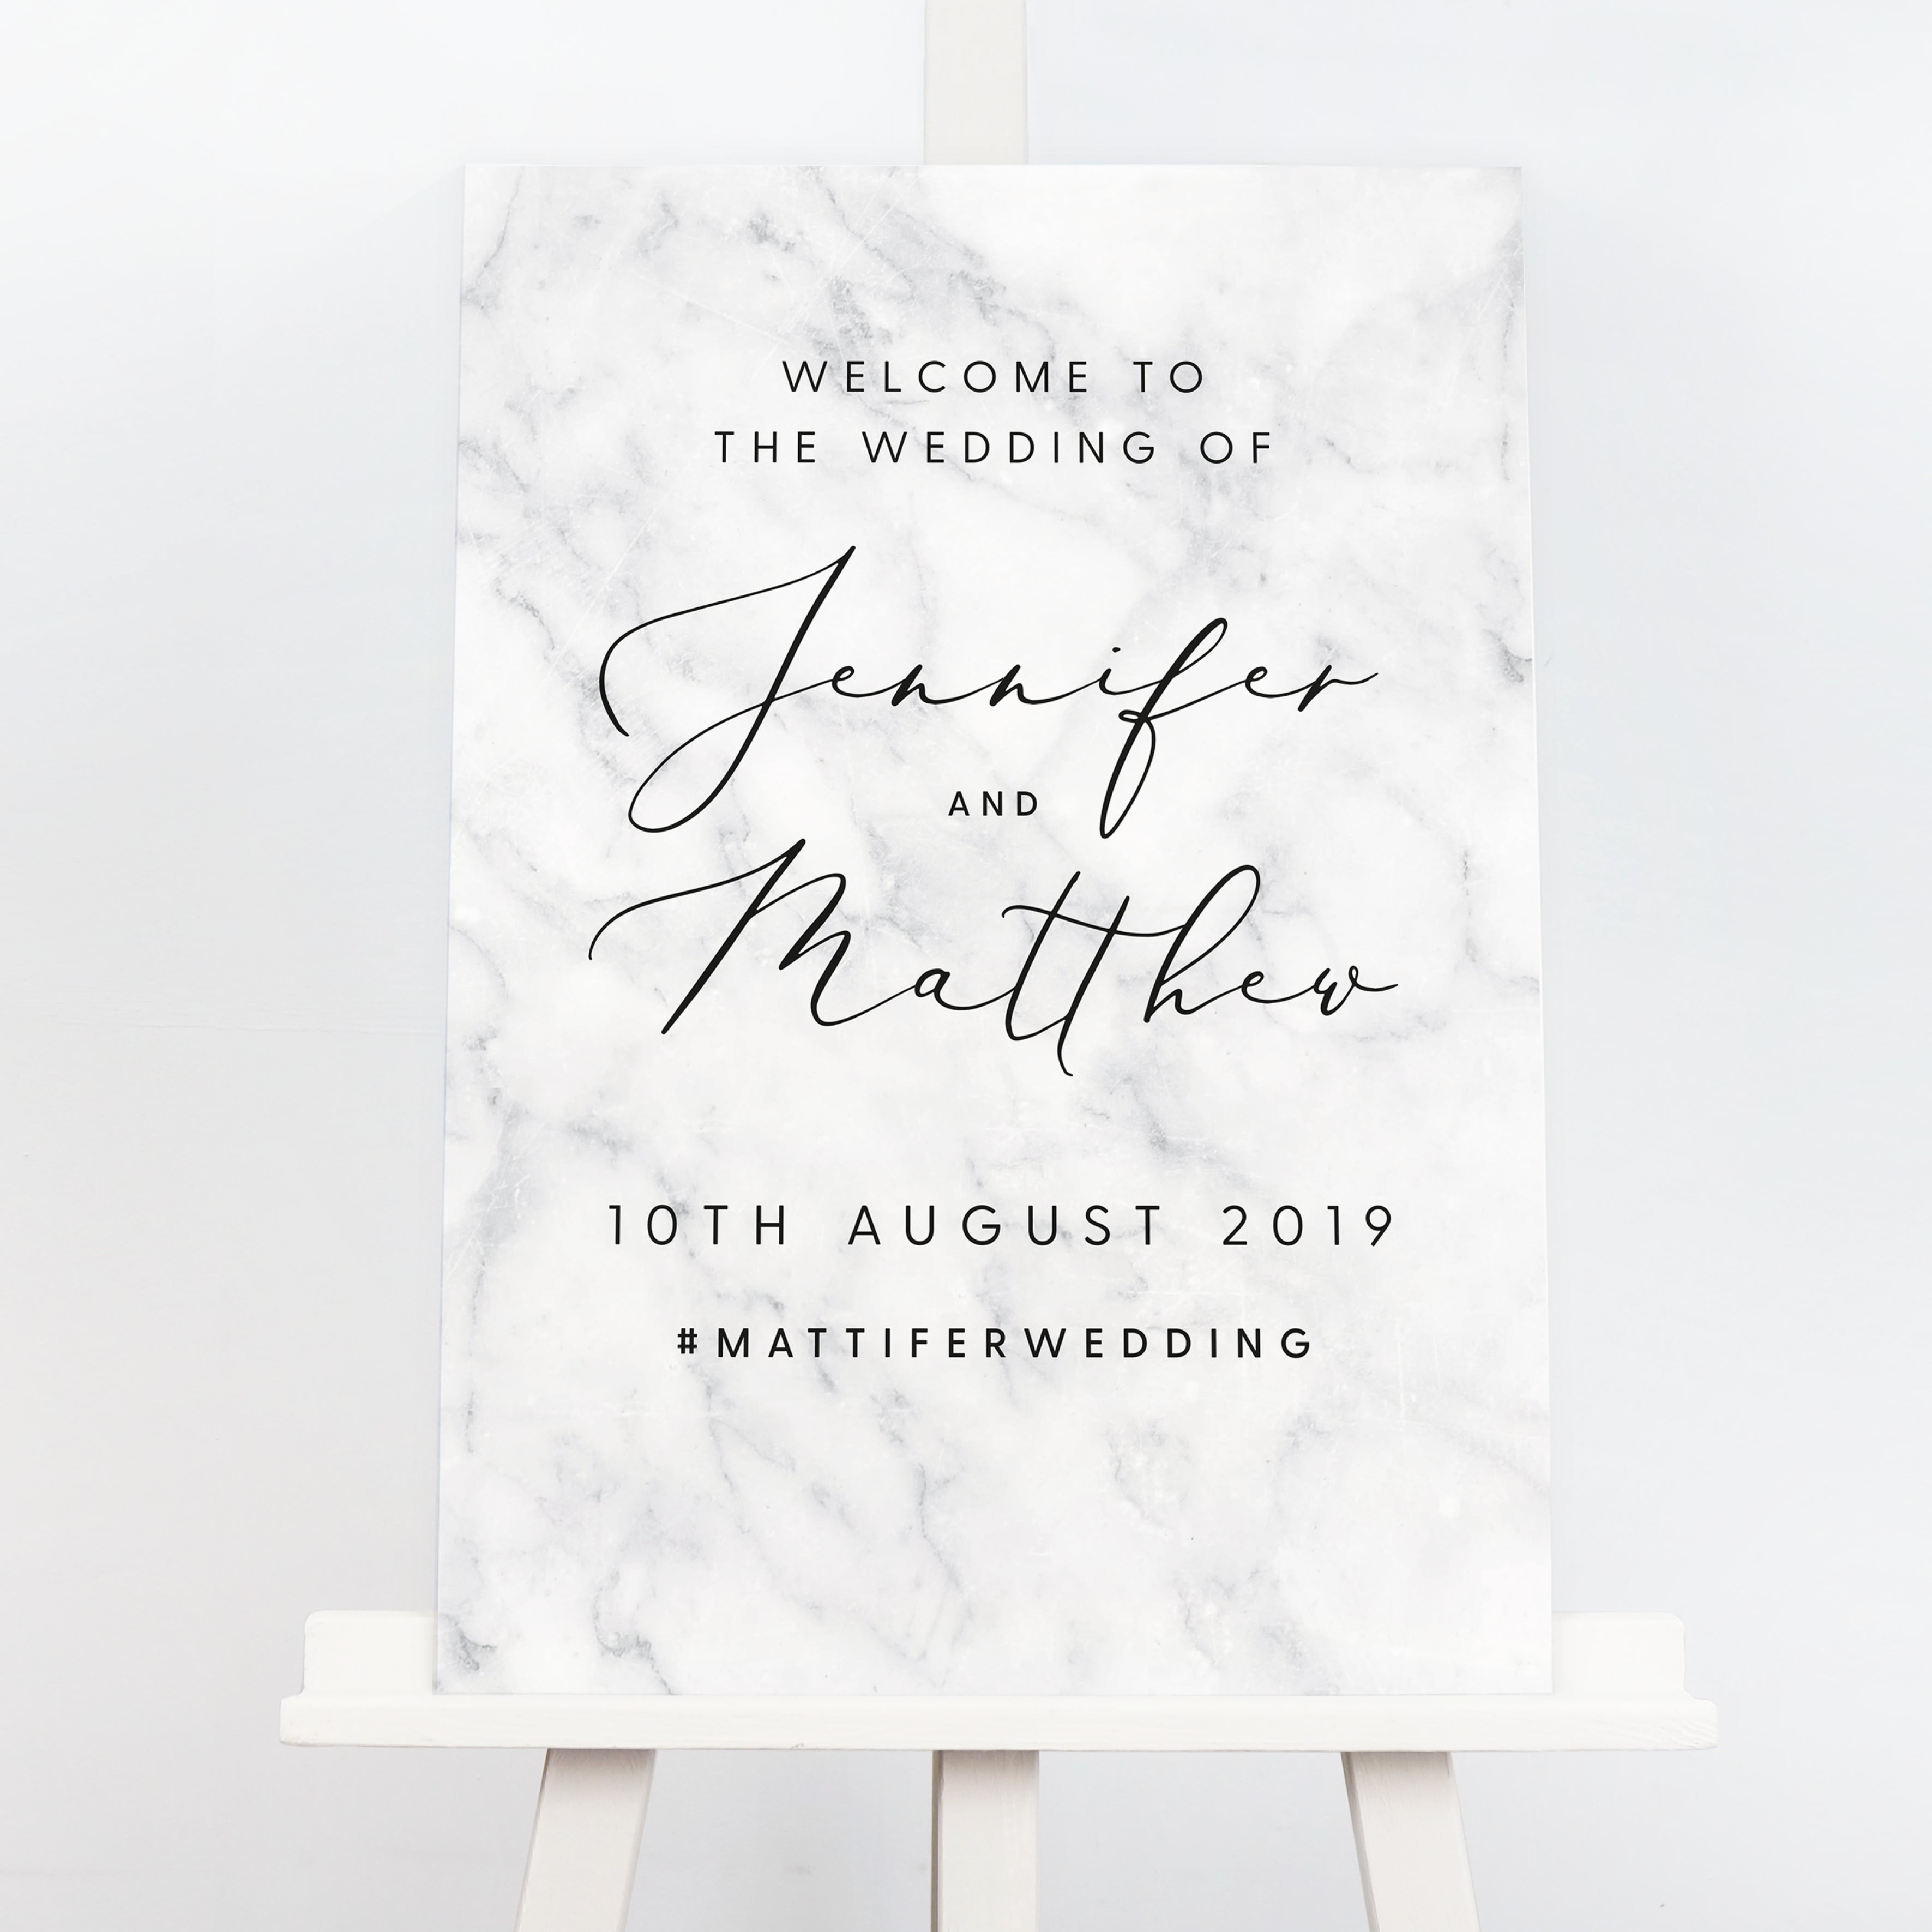 Monochrome marble order of the day sign